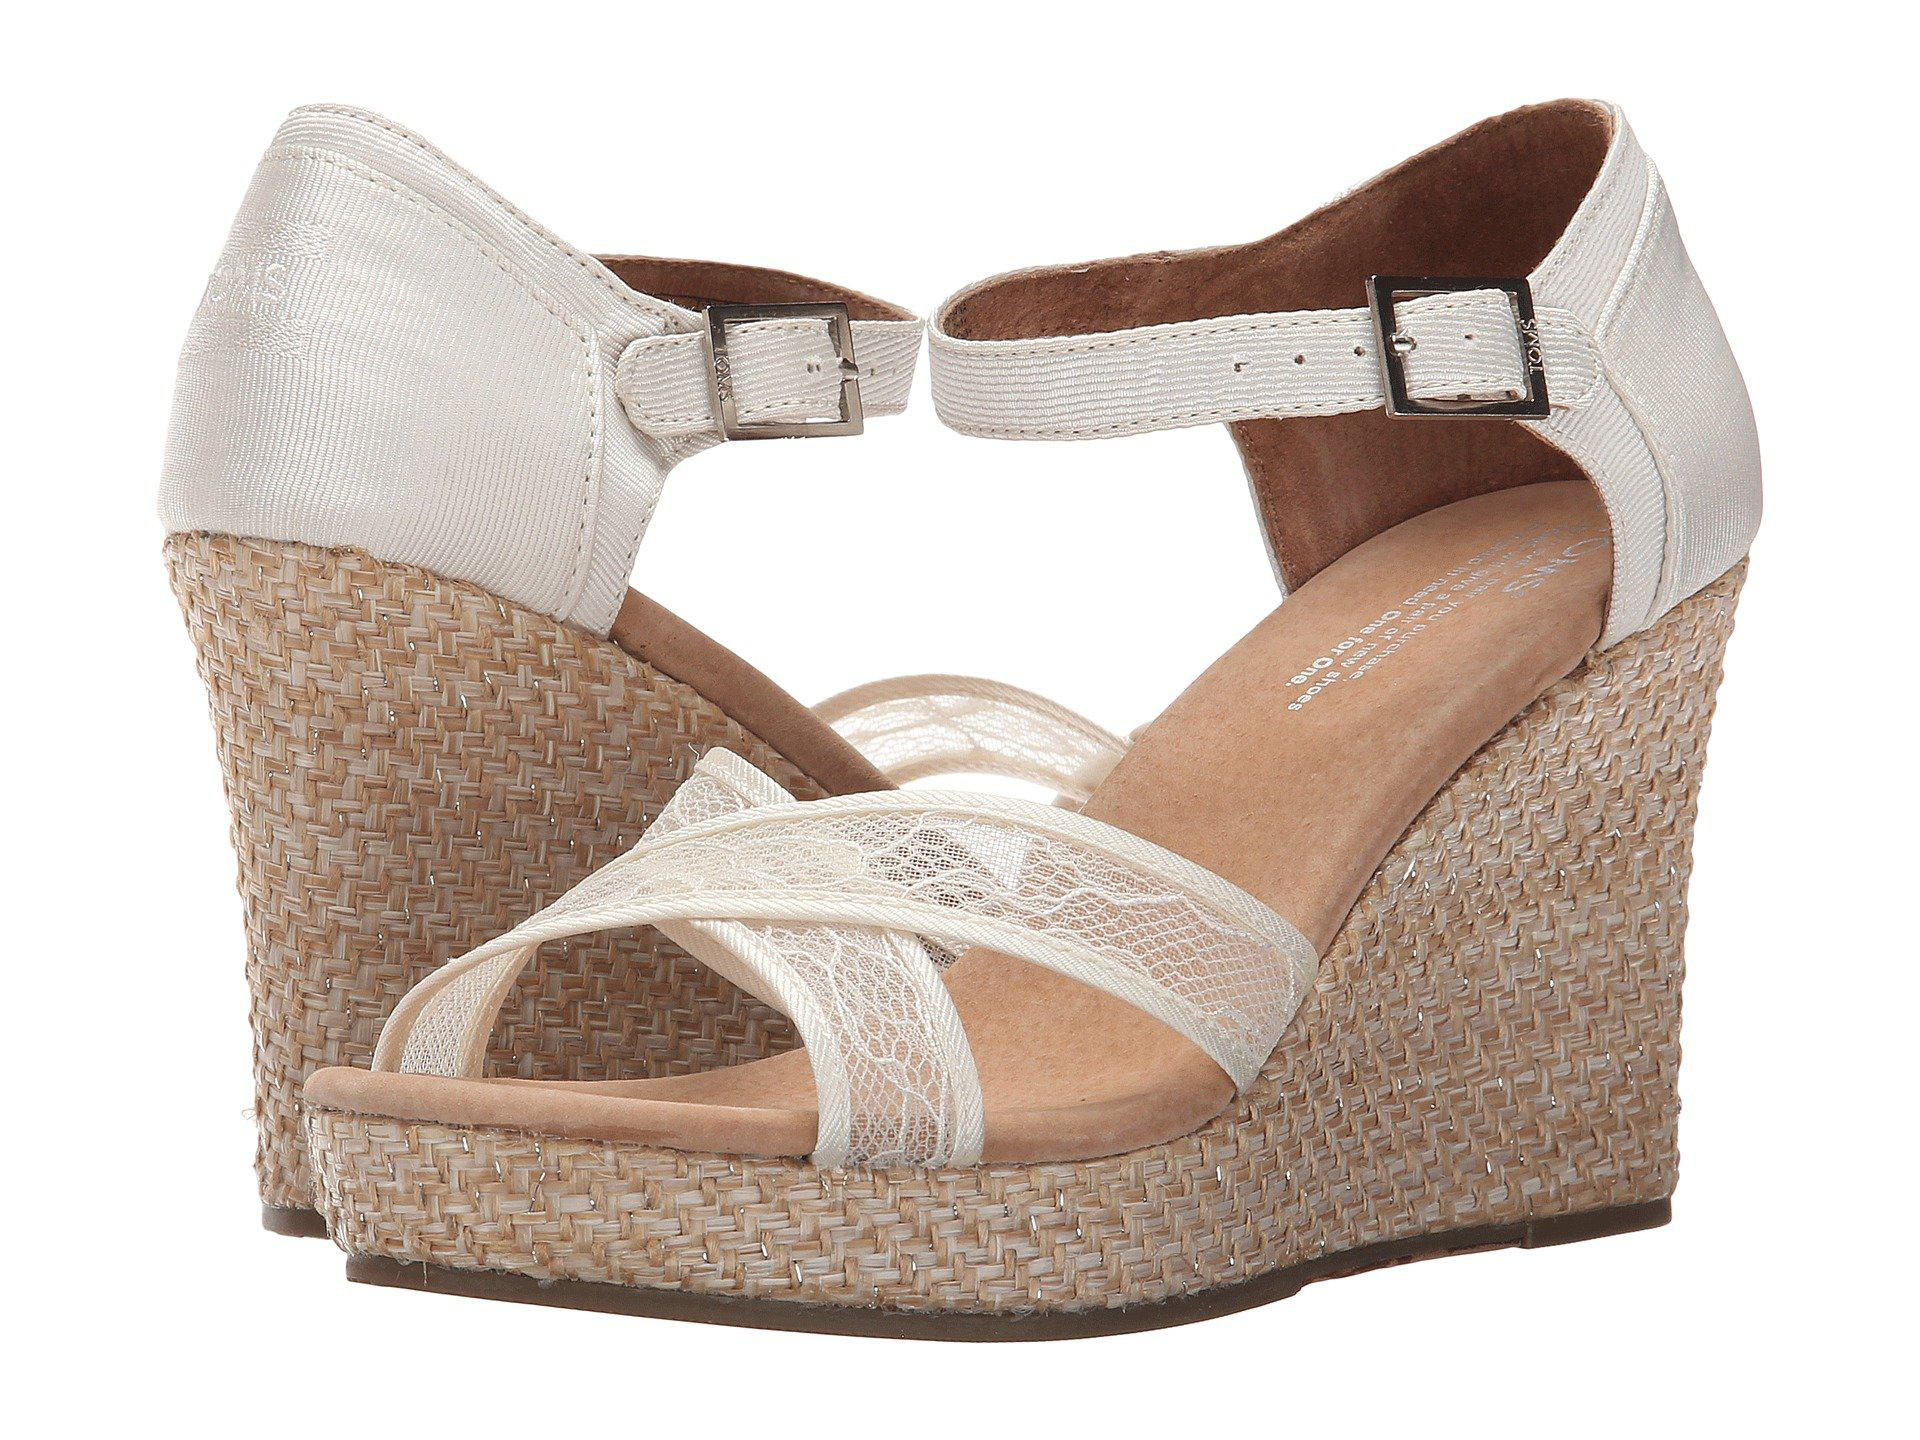 c96311ca349 Lyst toms wedding wedge jpg 1920x1440 Toms wedges shoes for wedding